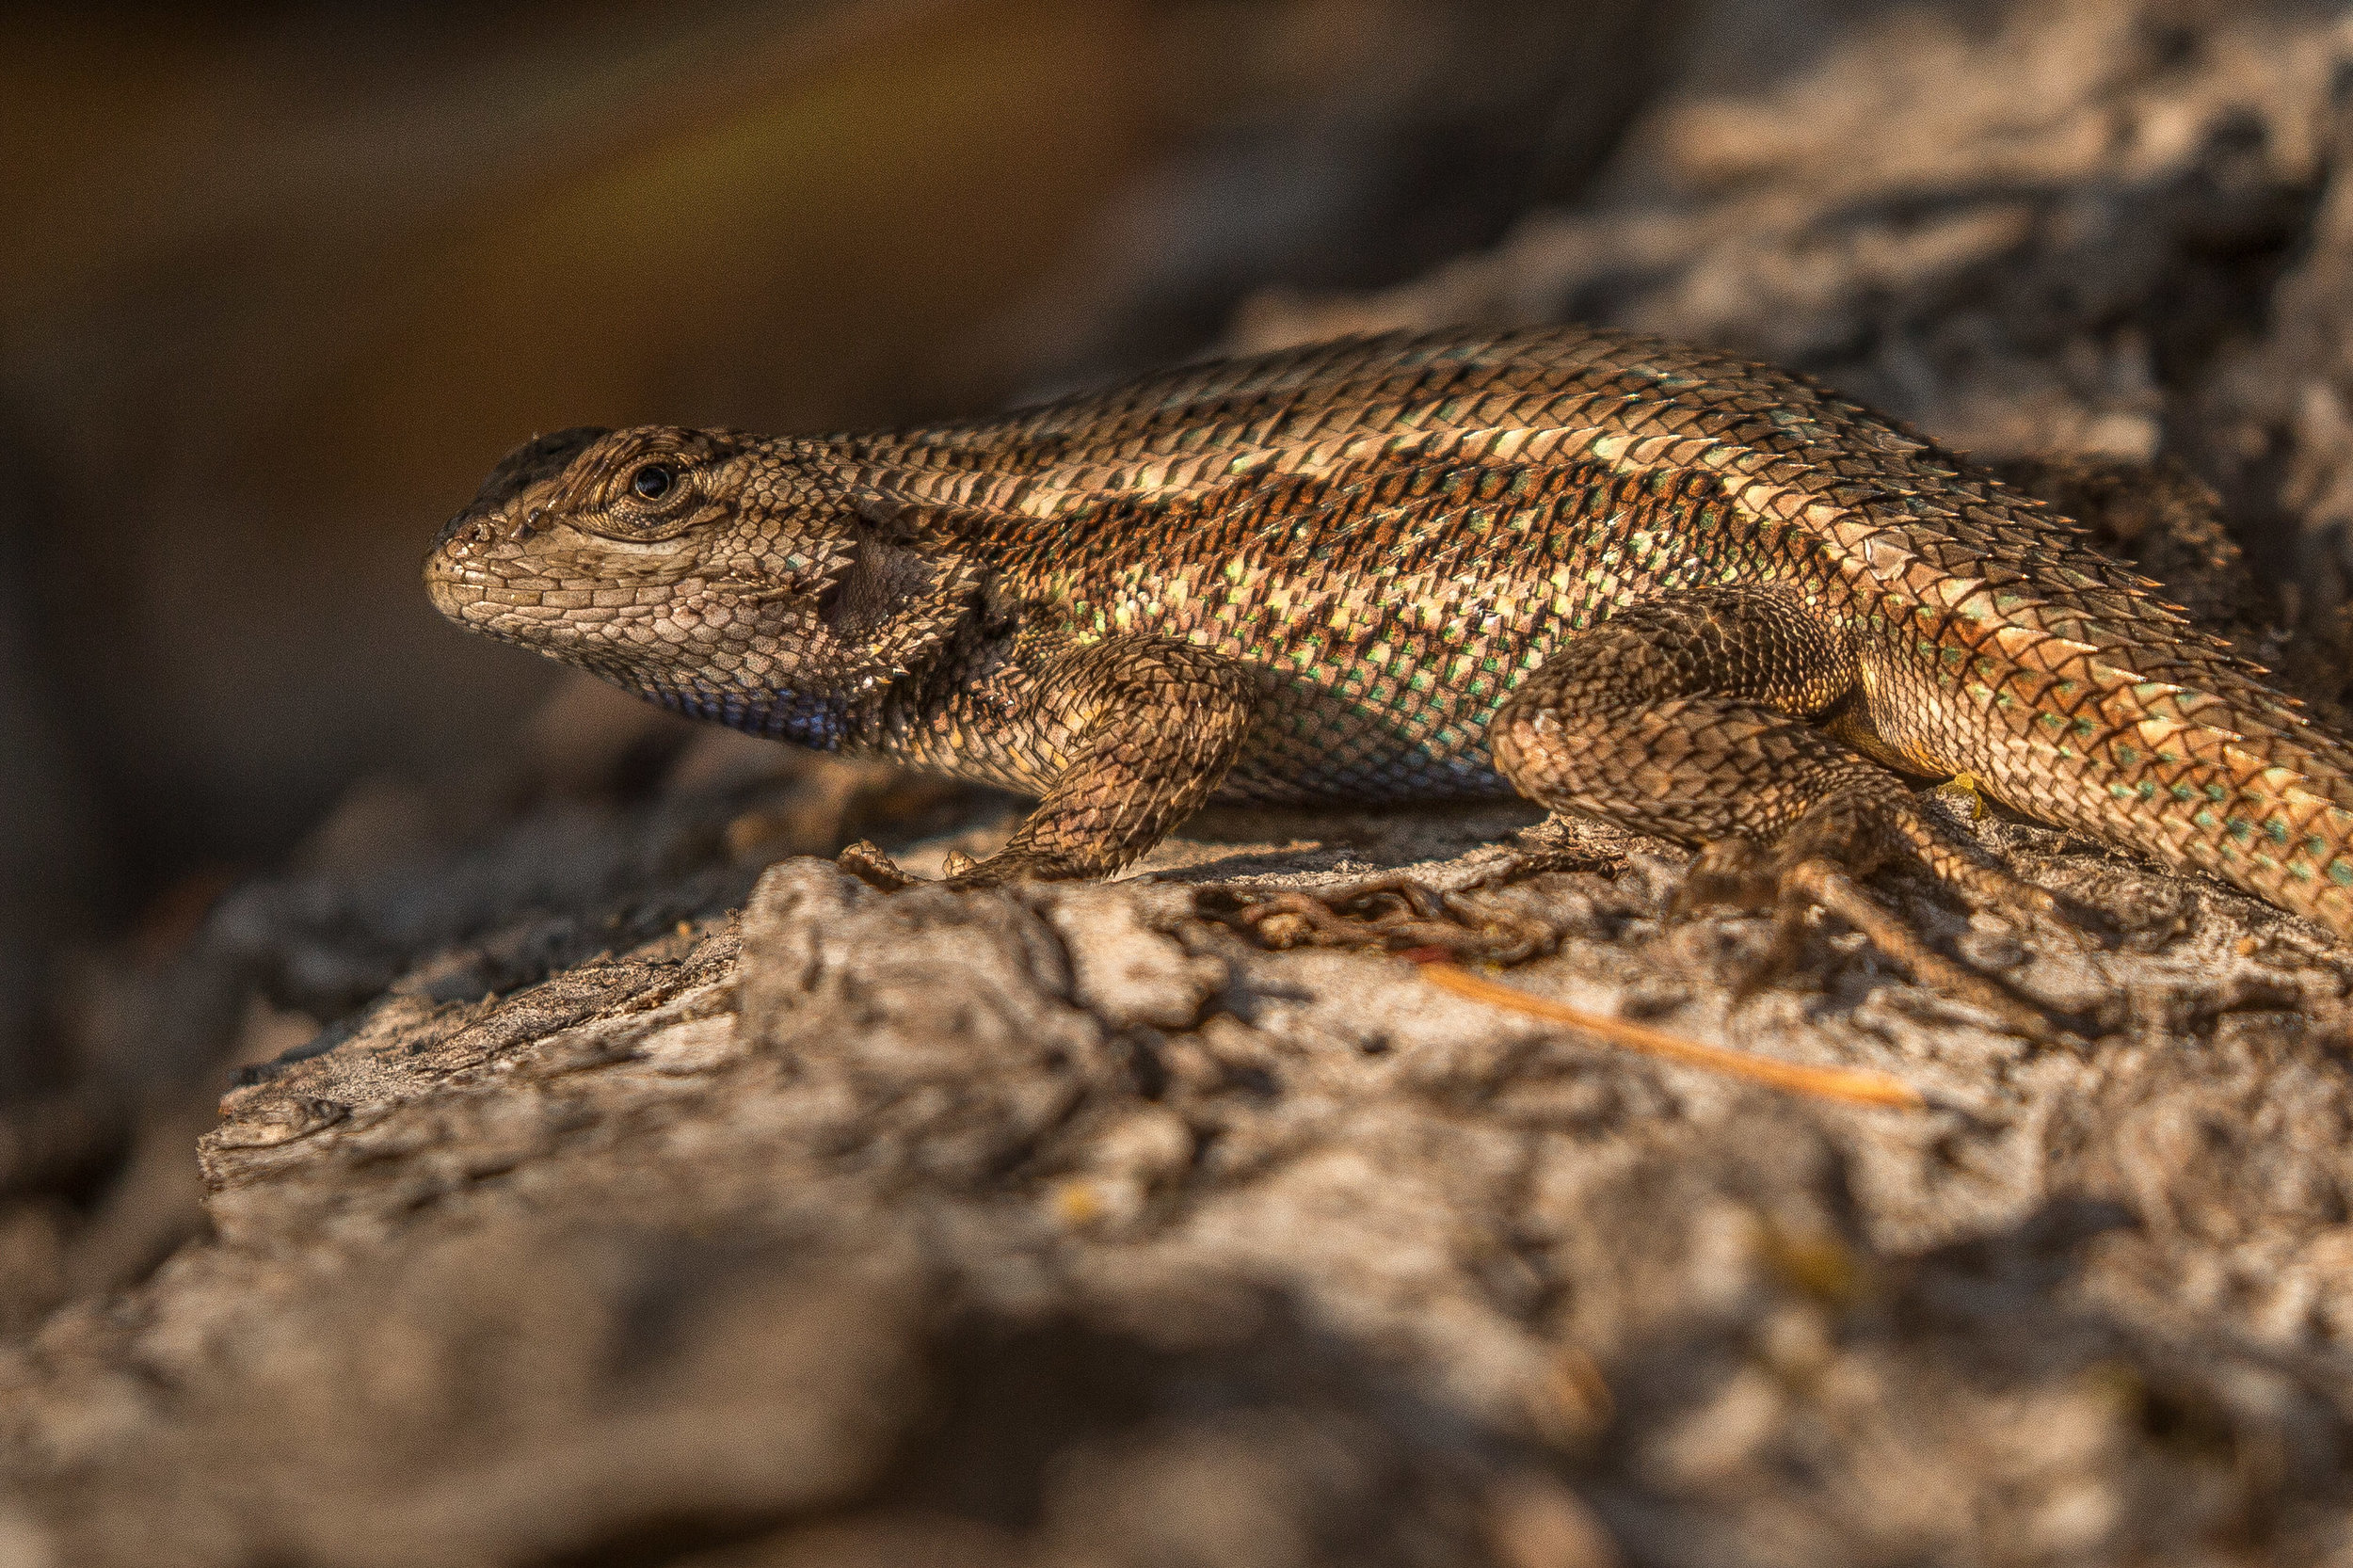 western fence lizard (Sceloporus occidentalis) - A western fence lizard basking in the afternoon sun. The blood of this species of lizard is special: ticks that bite them get purged of the bacteria that causes Lyme disease in humans as a result of the interaction with a protein in the lizard's blood.